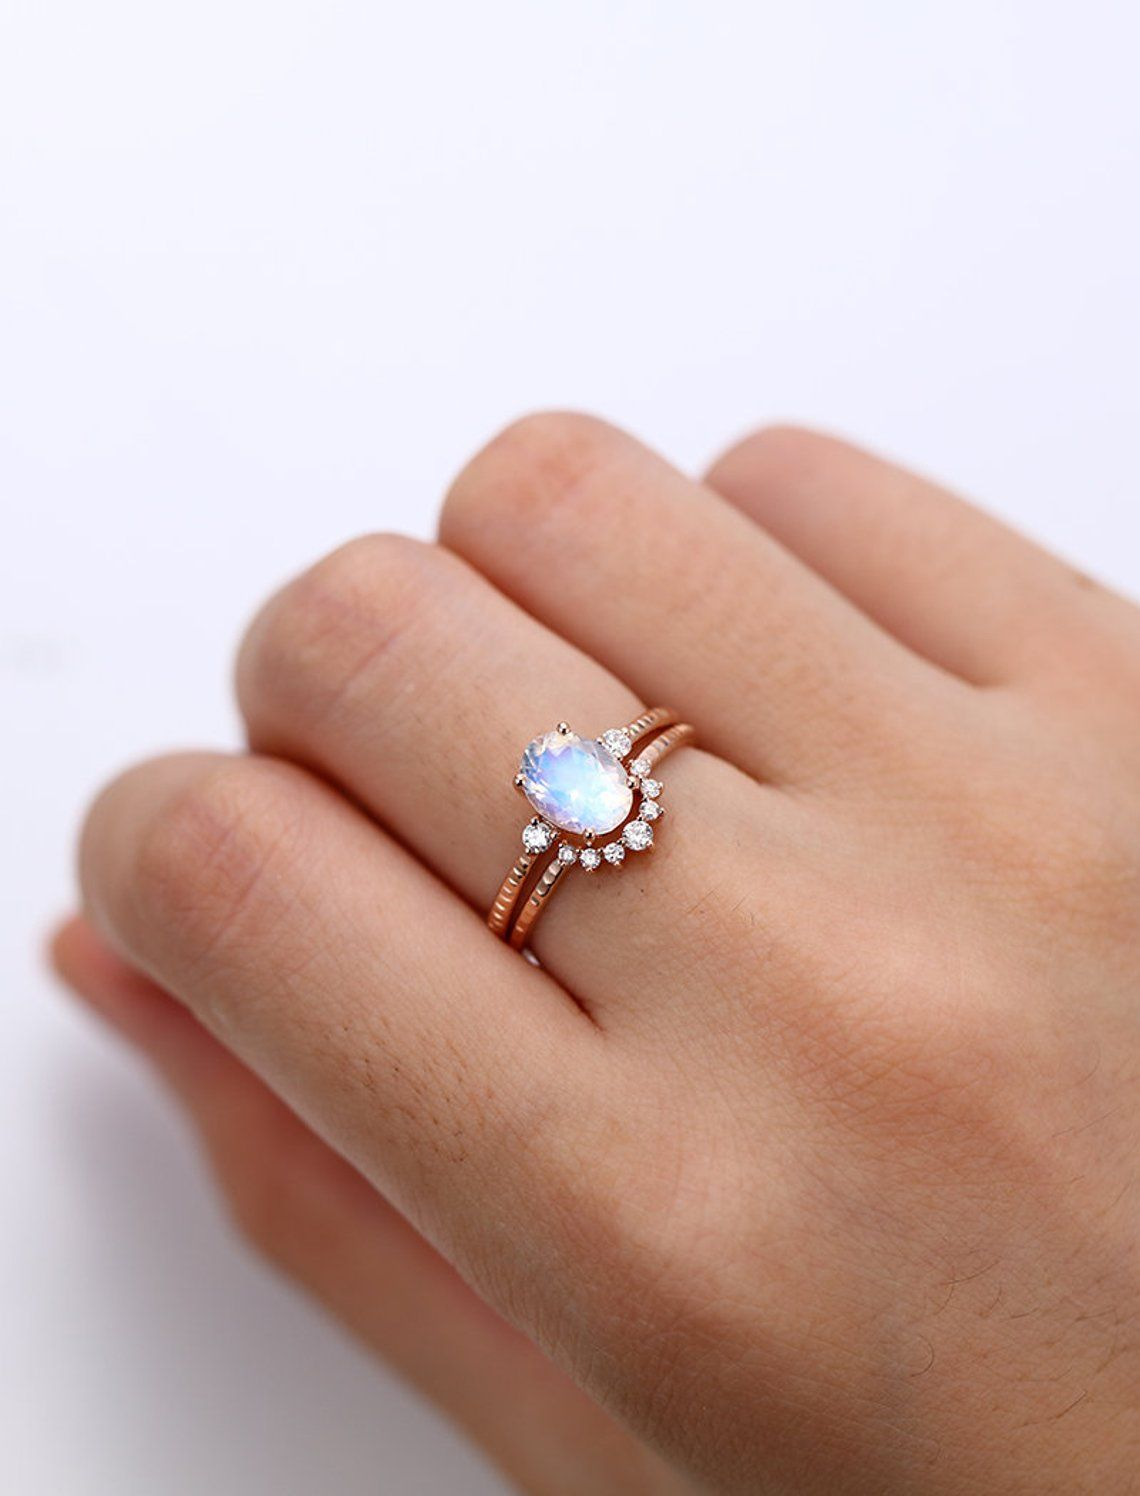 Moonstone engagement ring set rose gold diamond cluster ring unique